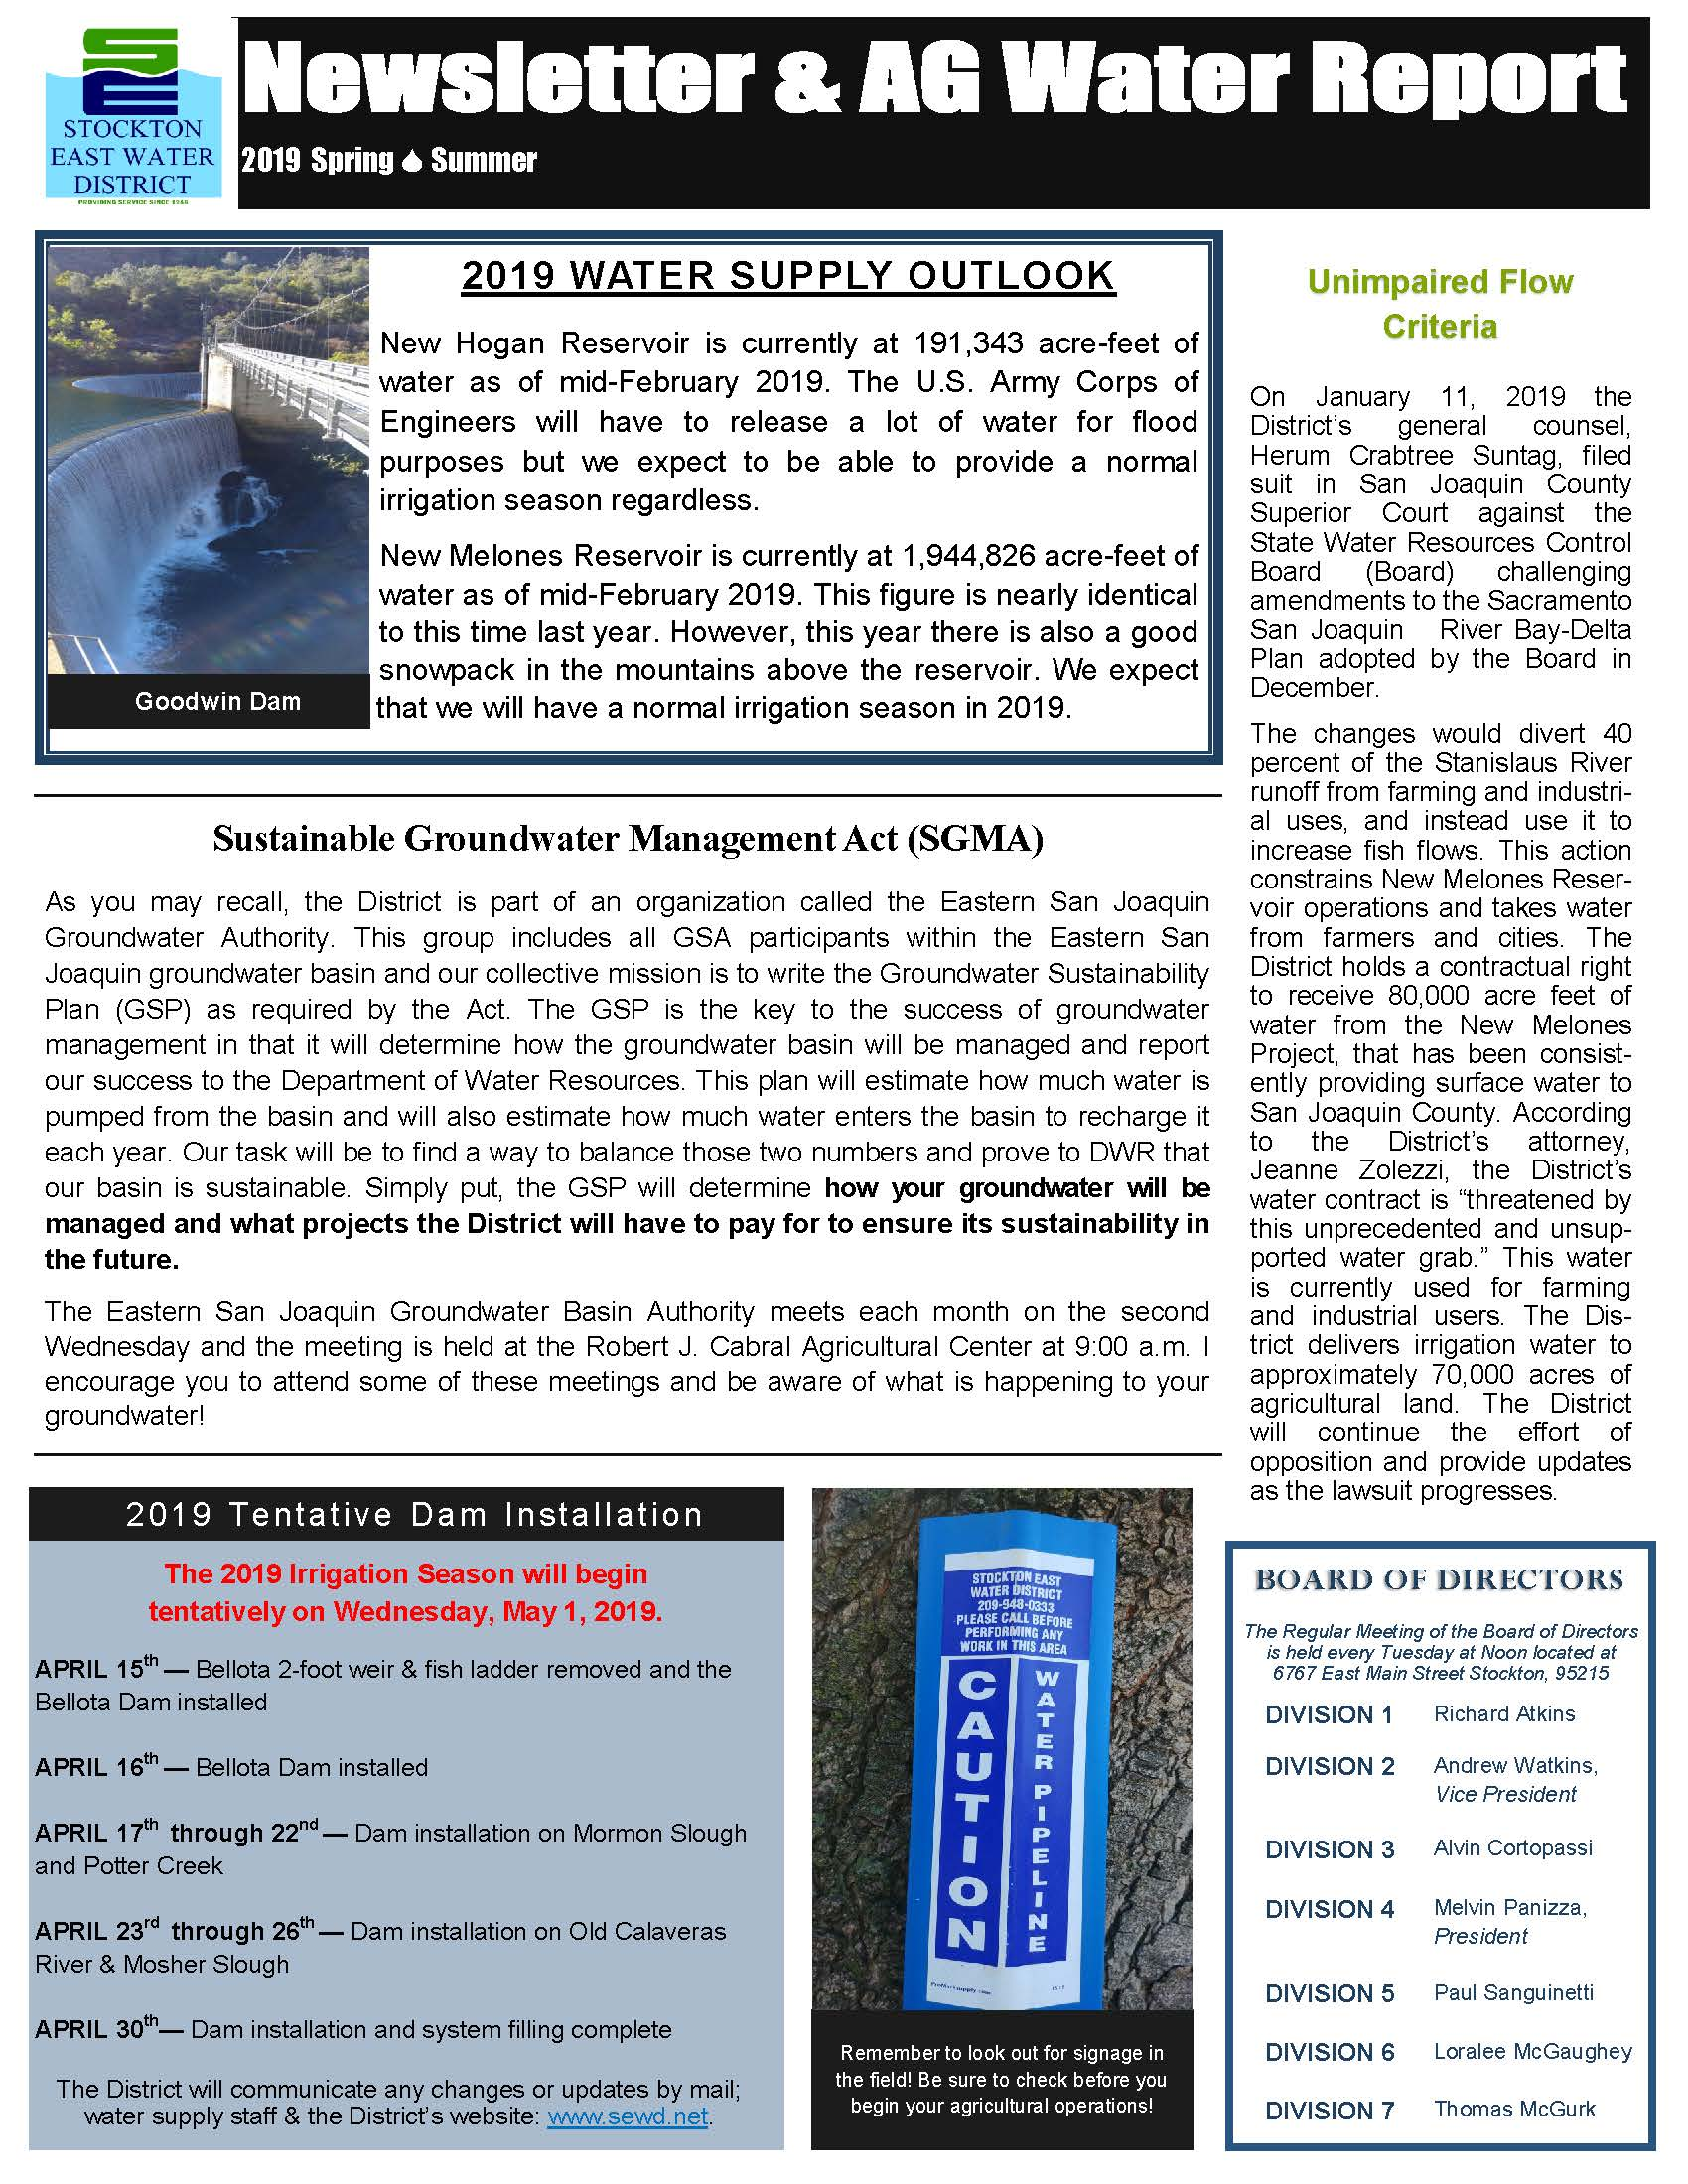 2019 SEWD Spring/Summer Newsletter and AG Water Report